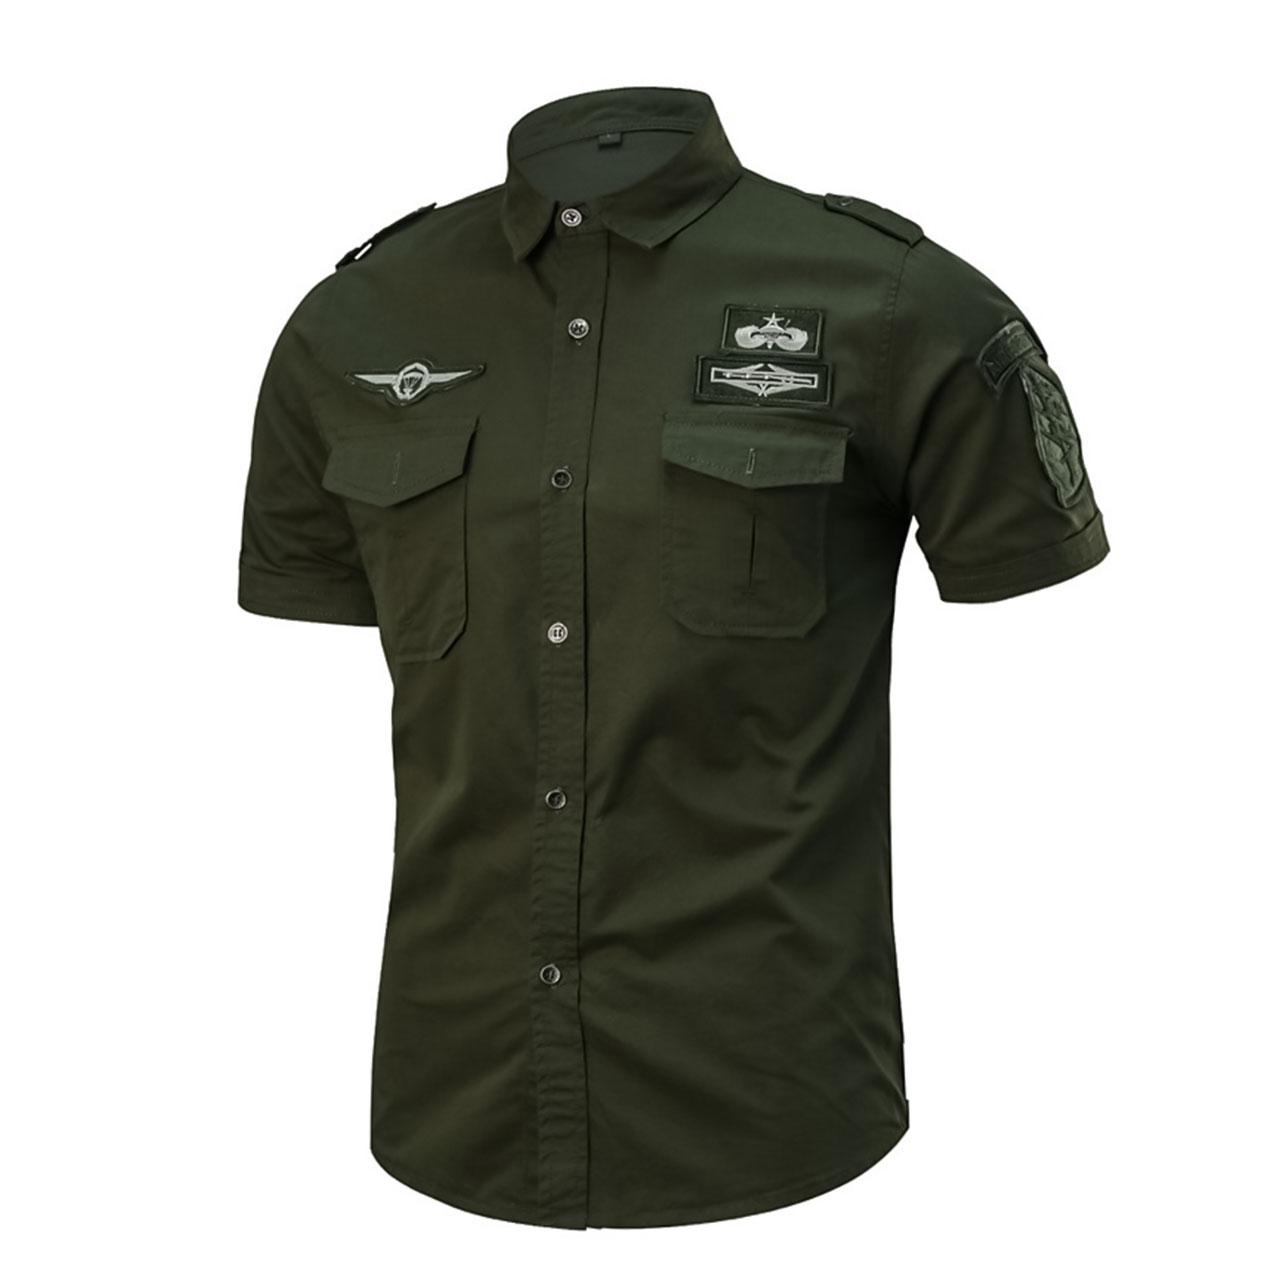 Men's Solid Army Green Colored Cotton Military Short Sleeve Daily Slim Shirt